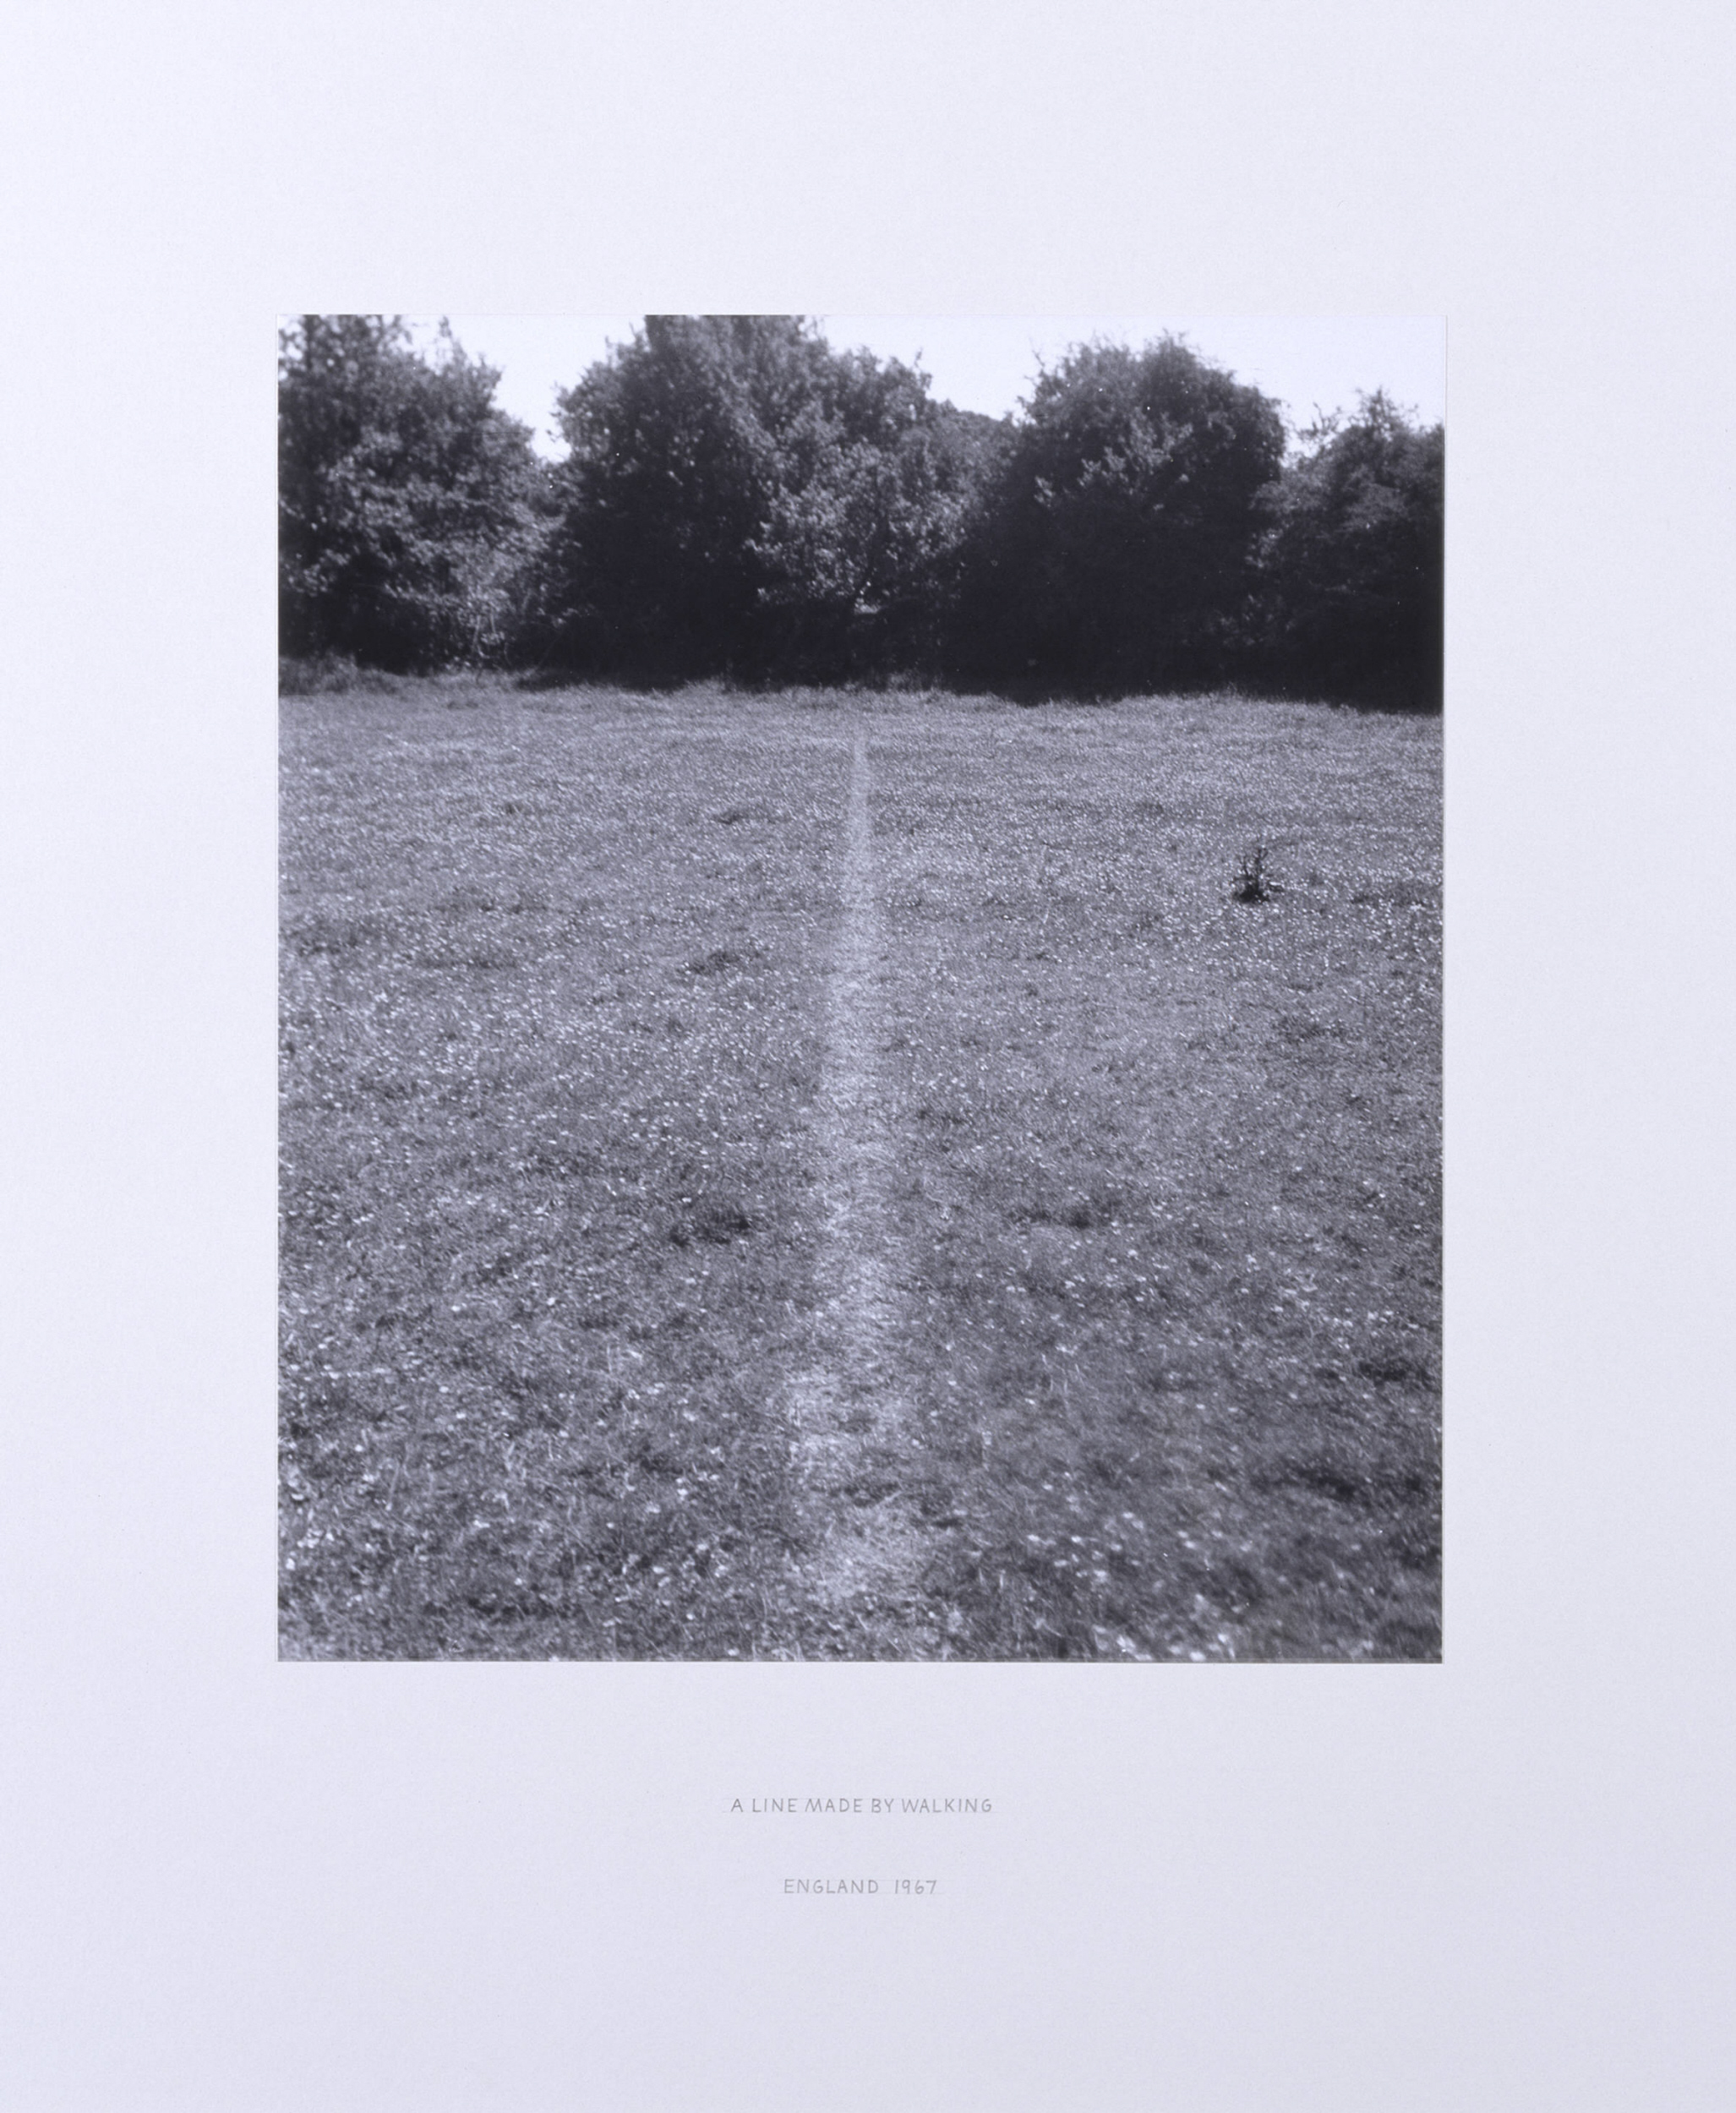 Richard Long, A Line Made by Walking, 1967. Collection of Tate. Purchased 1976. © Richard Long / DACS, London. Courtesy of Tate Britain.